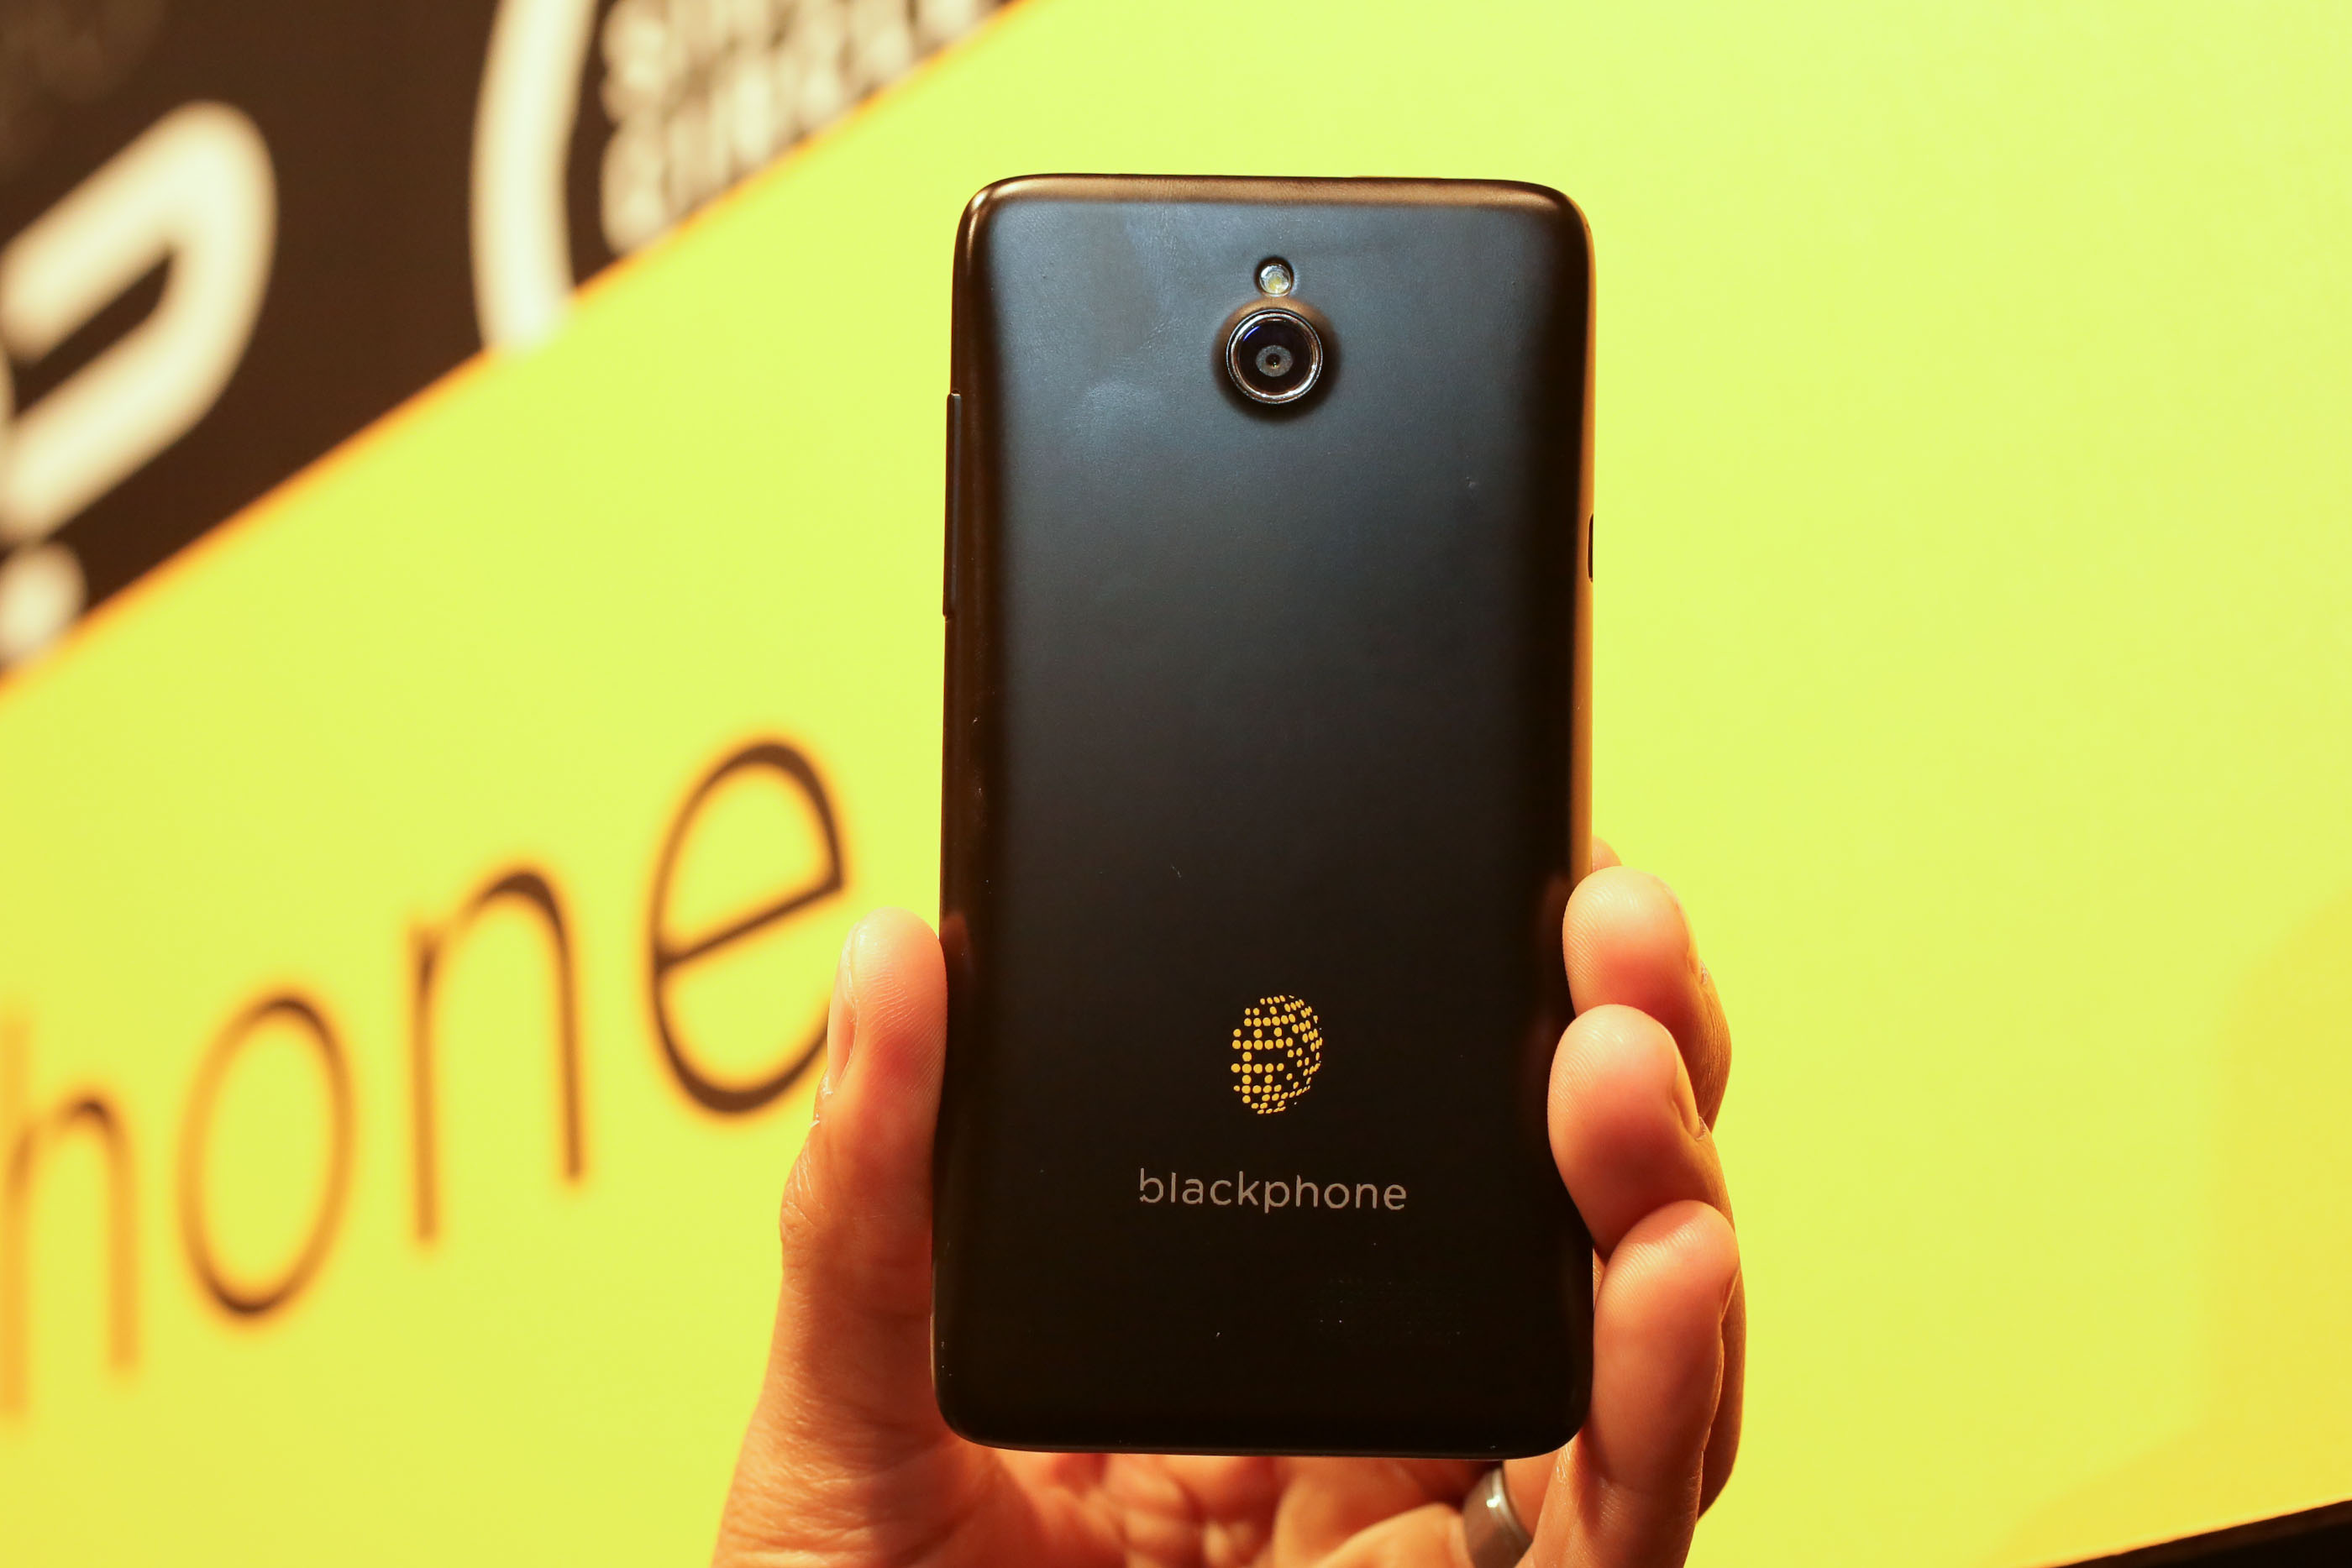 001Geekphone_Blackphone_35835123_add.jpg